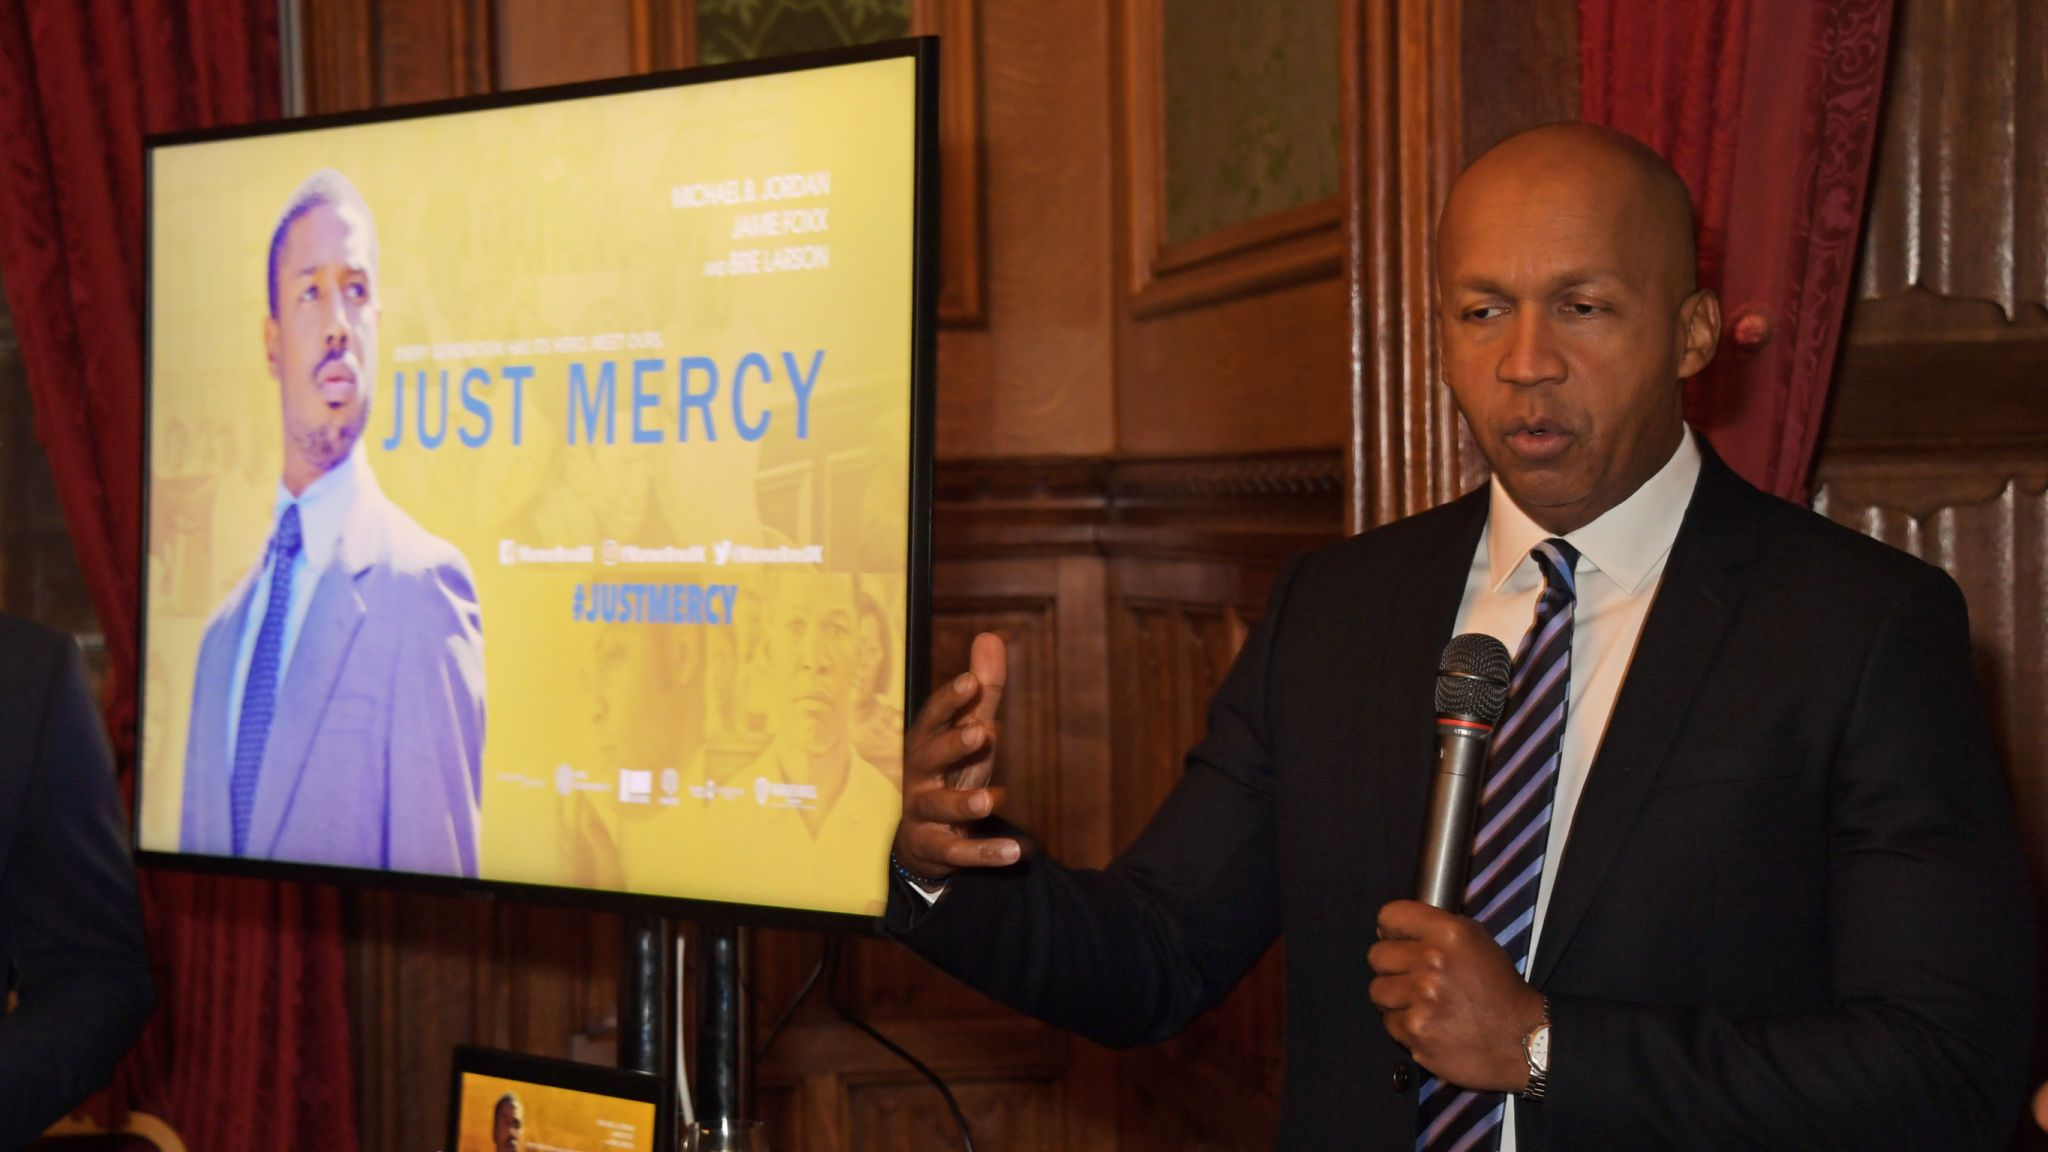 Bryan Stevenson attends an evening at the House Of Lords for the film Just Mercy on January 14, 2020 in London